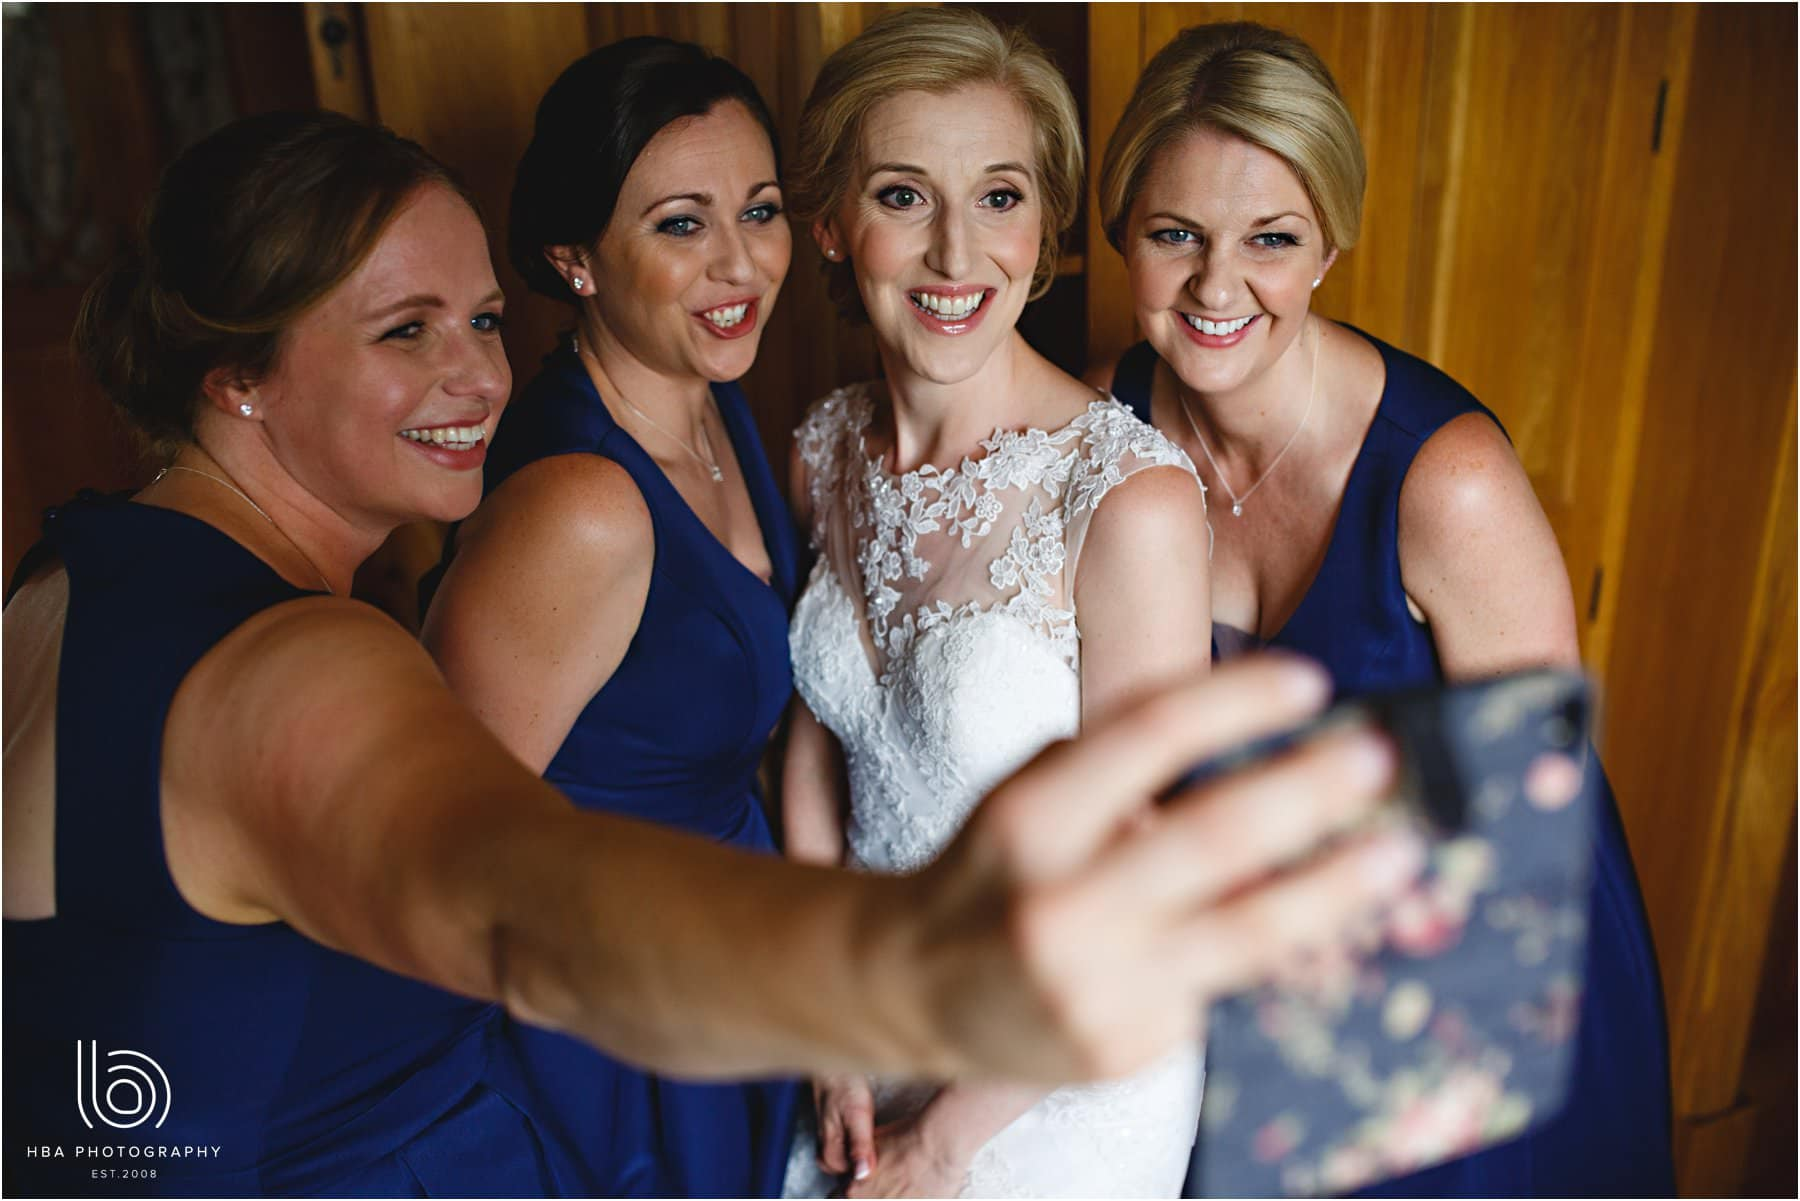 the bride and bridesmaids taking a selfie